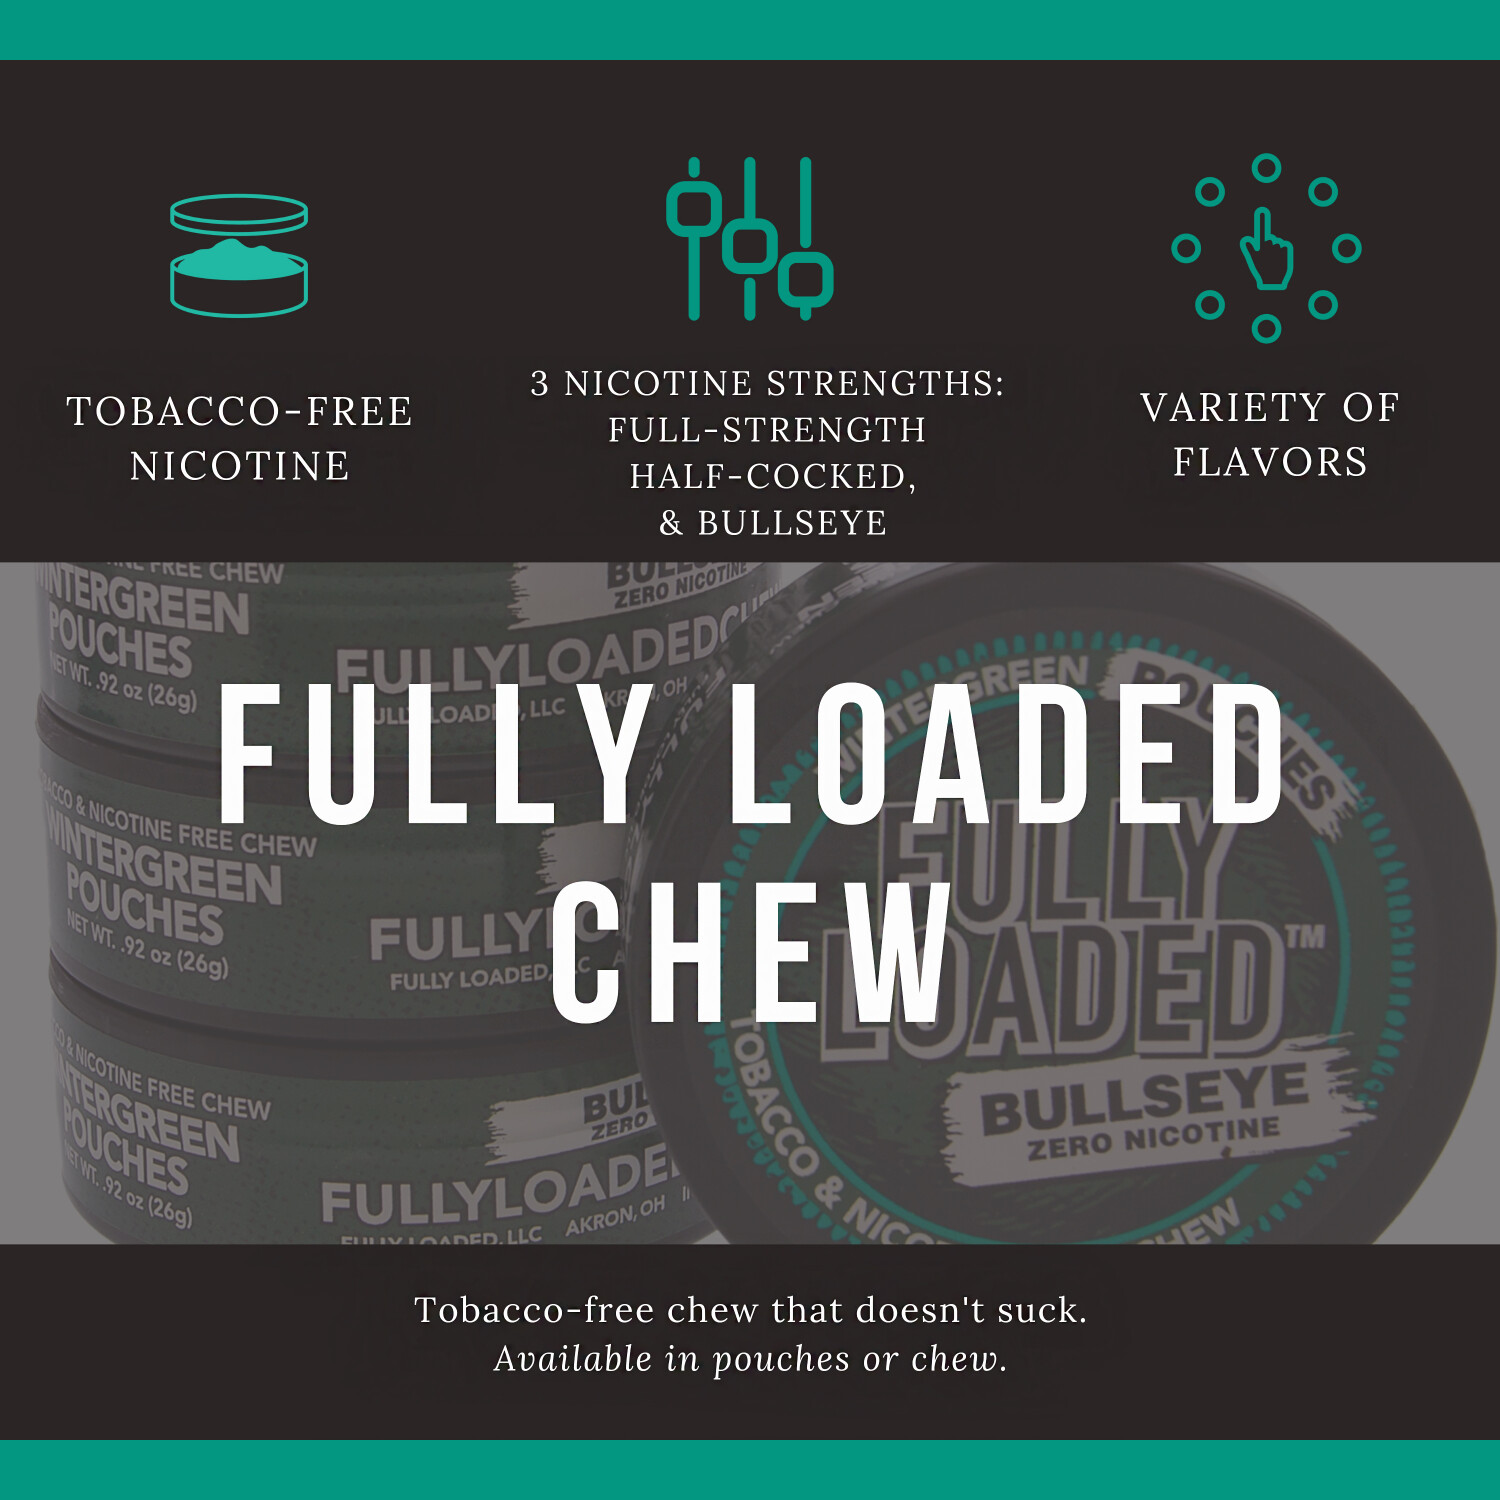 Fully Loaded Chew Tobacco and Nicotine Free Straight Bullseye Long Cut Authentic Flavor, Chewing Alternative- 5 Cans